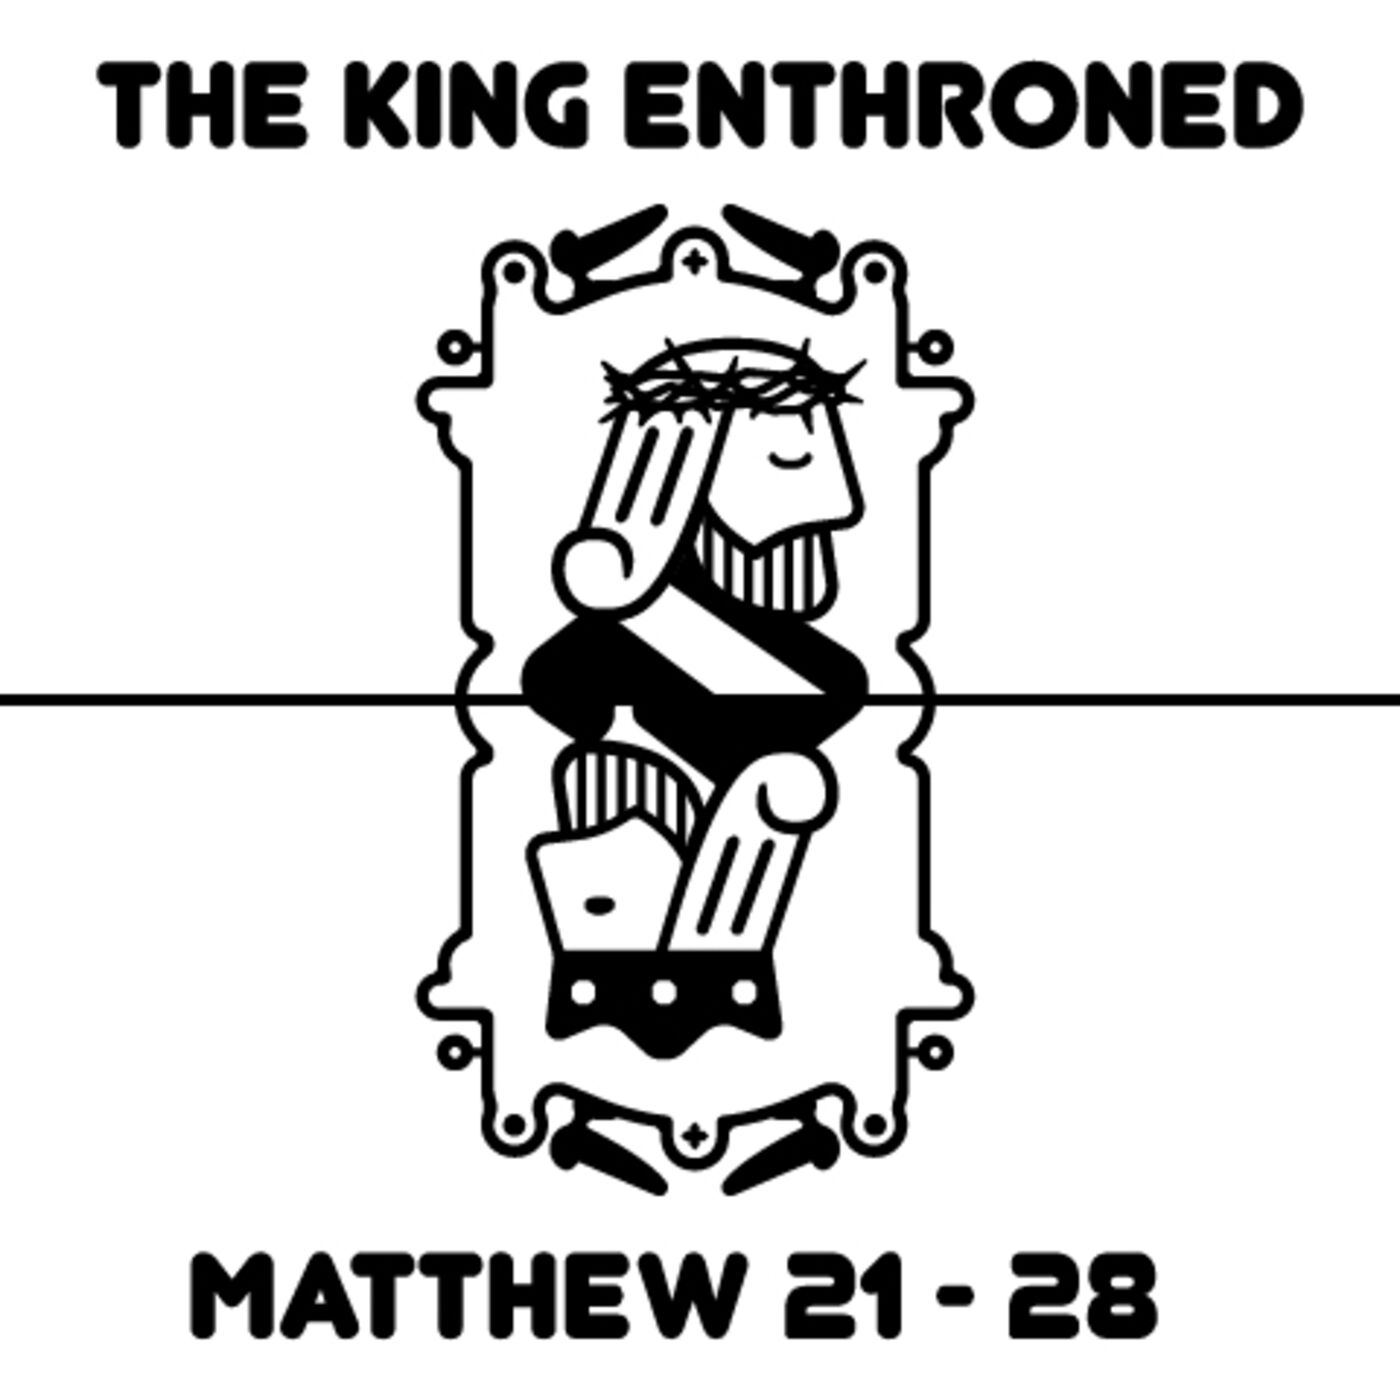 Matthew: The King's Commission